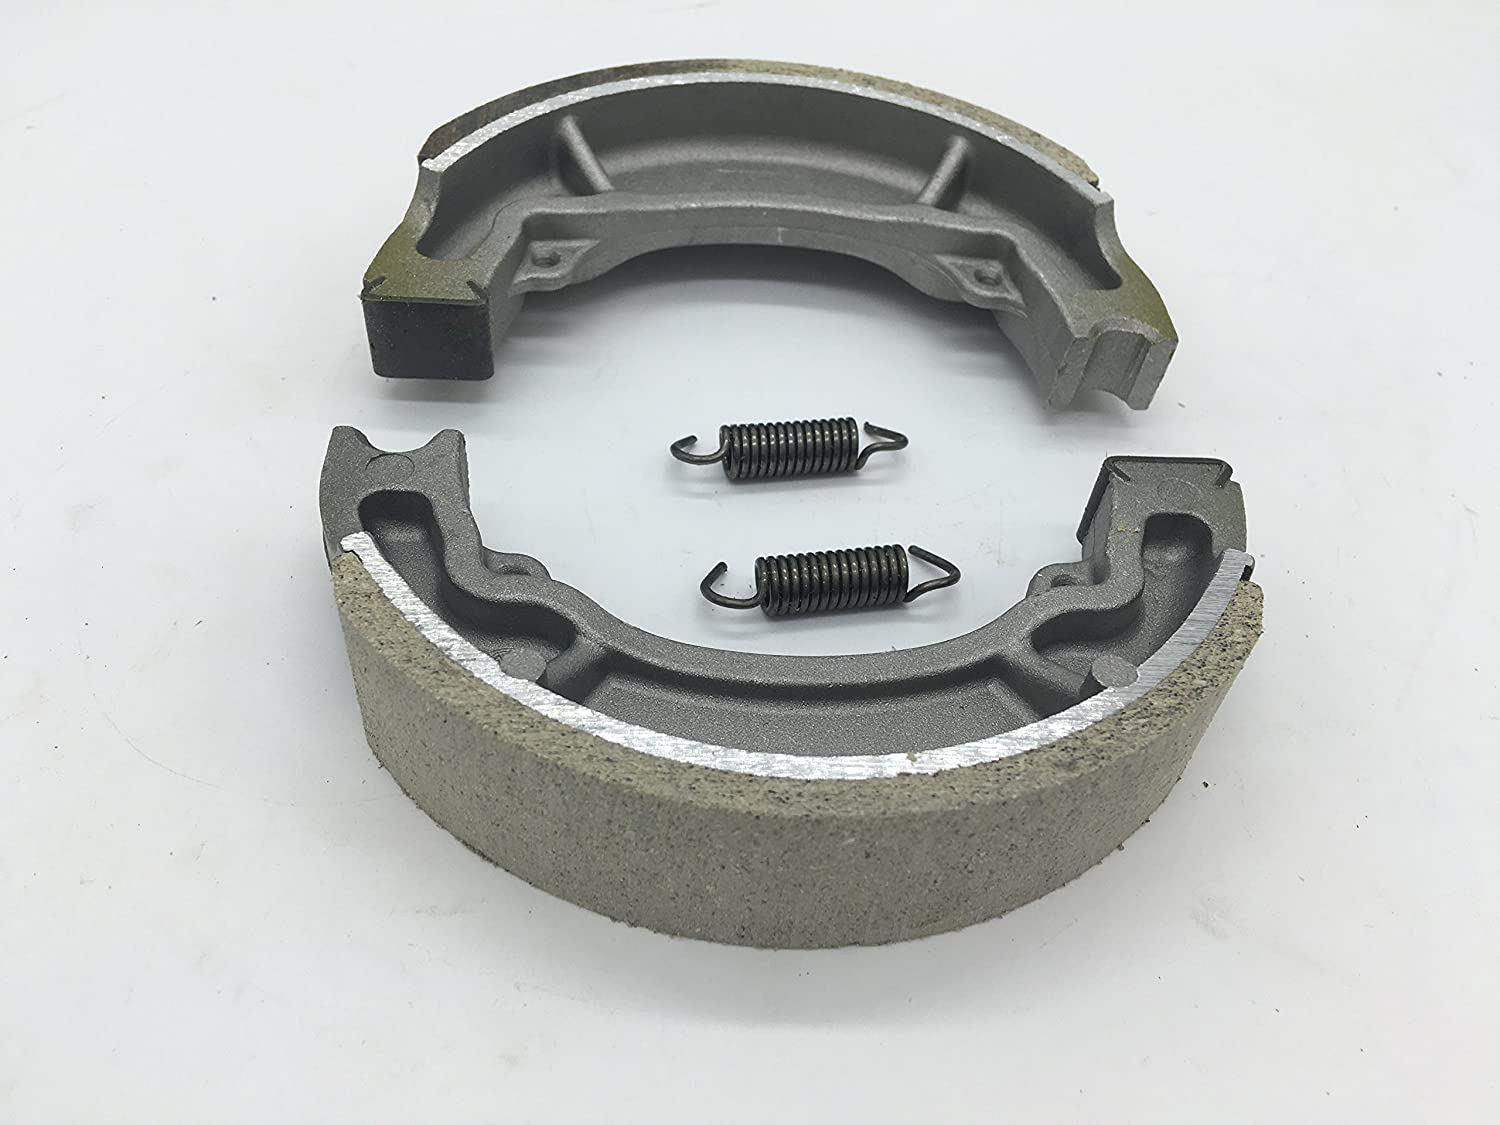 Rear Drum Brake Shoes Pads for GY6 150cc Scooter Moped Taotao Roketa Jonway Ice Peace